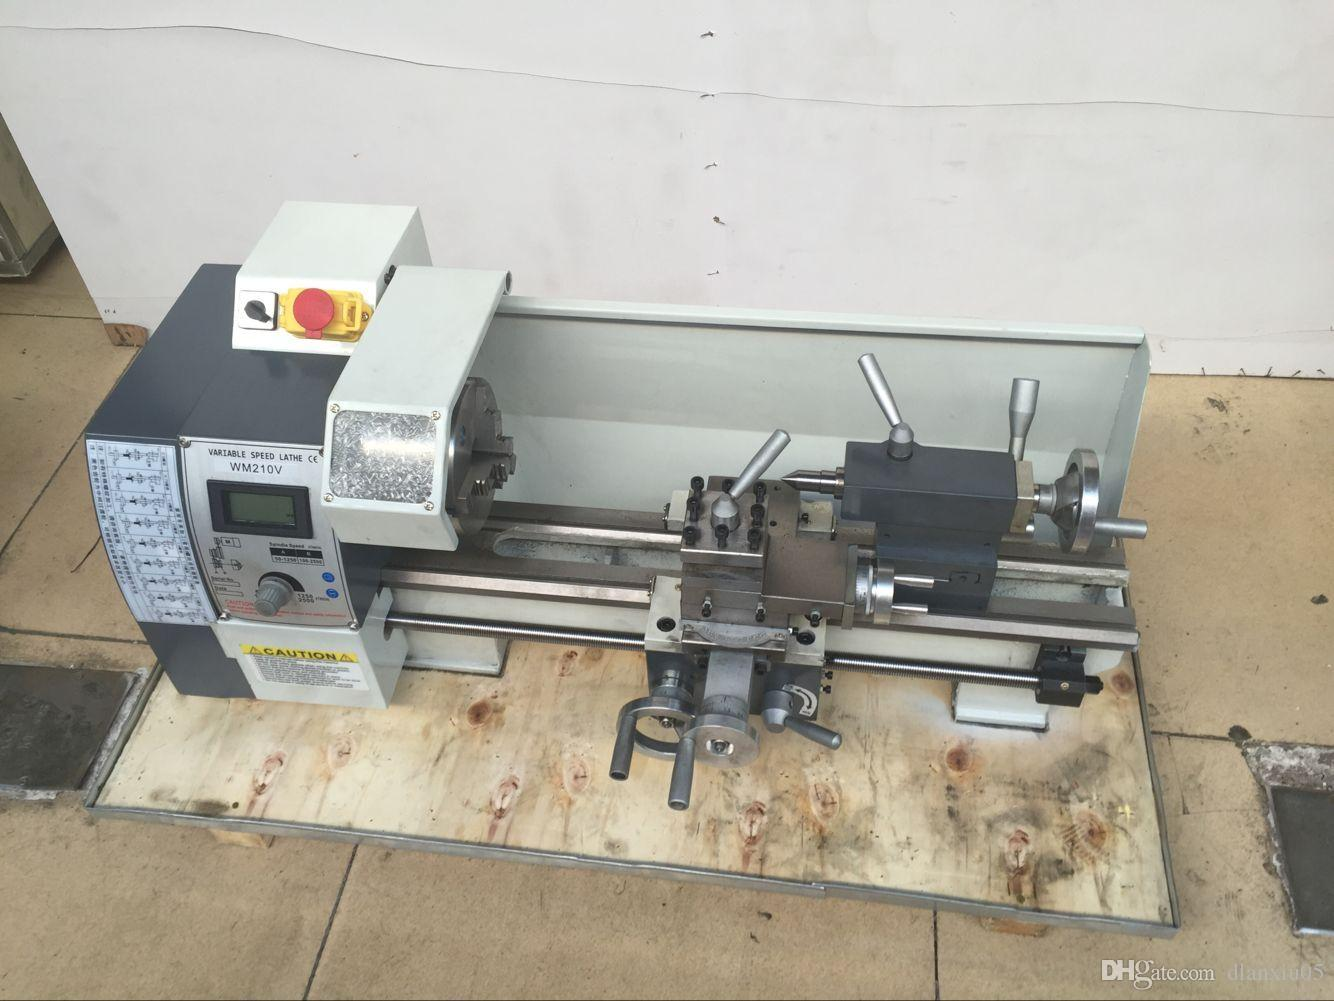 metal lathe for sale. 2018 newest 850w variable speed mini metal lathe machine wm210v 38 small bench for sale from dlanxiu05, $882.42 | dhgate.com